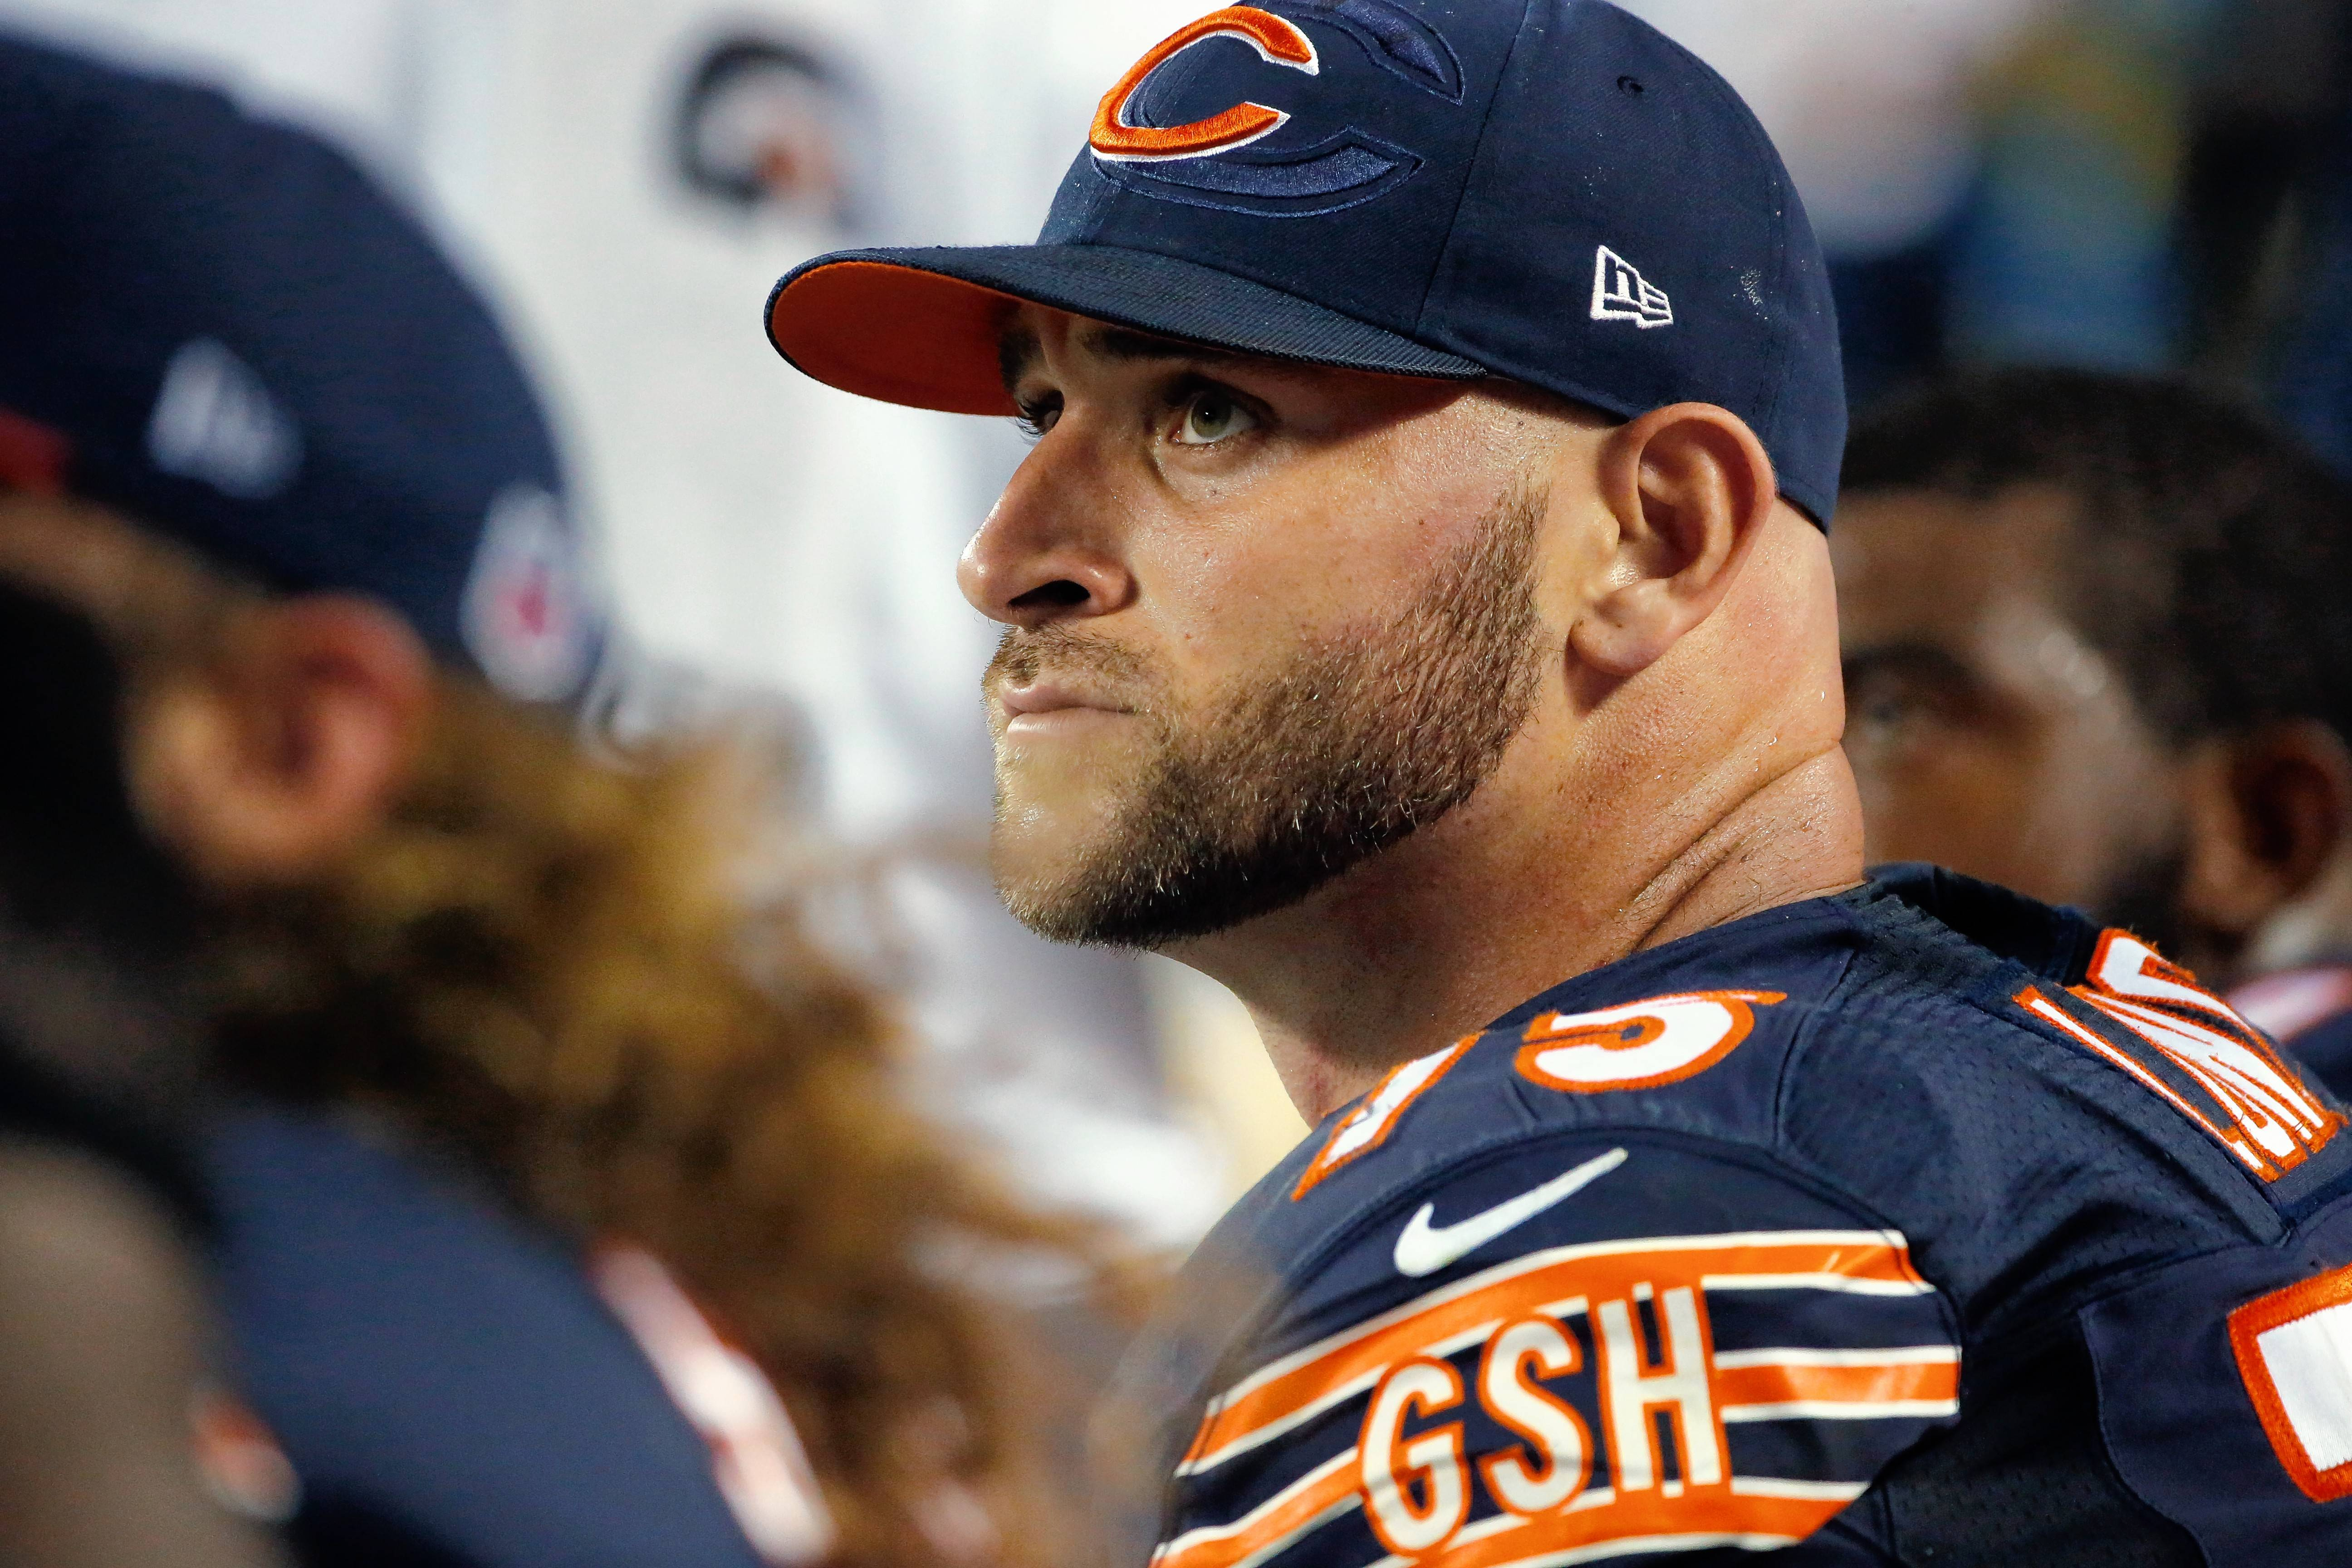 Kyle Long dismissed from Bears practice for fighting